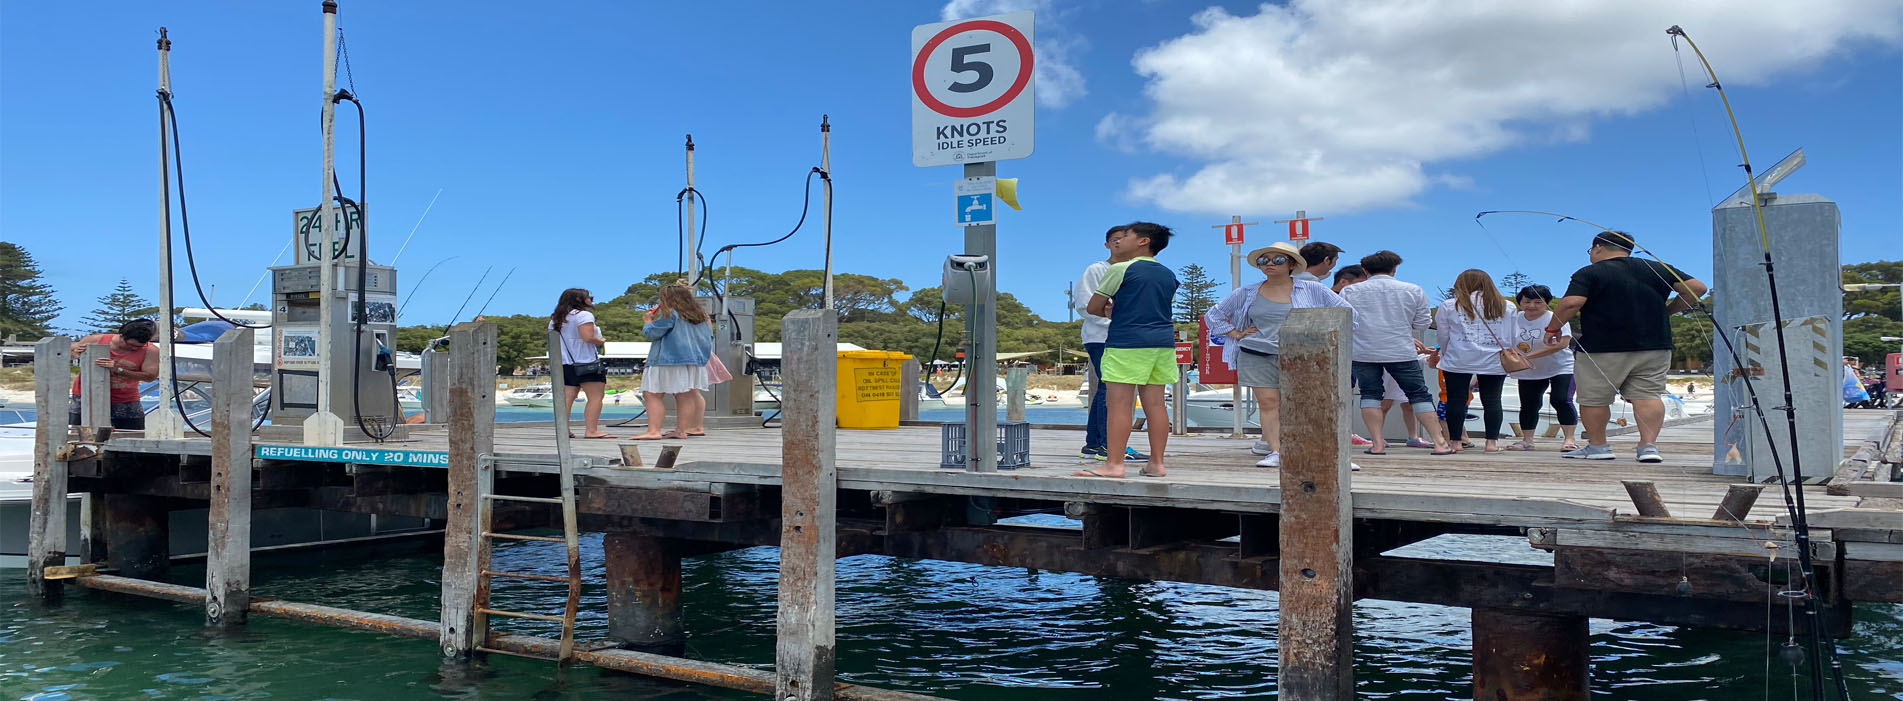 THOMSON BAY FUEL JETTY clients waiting for pick up